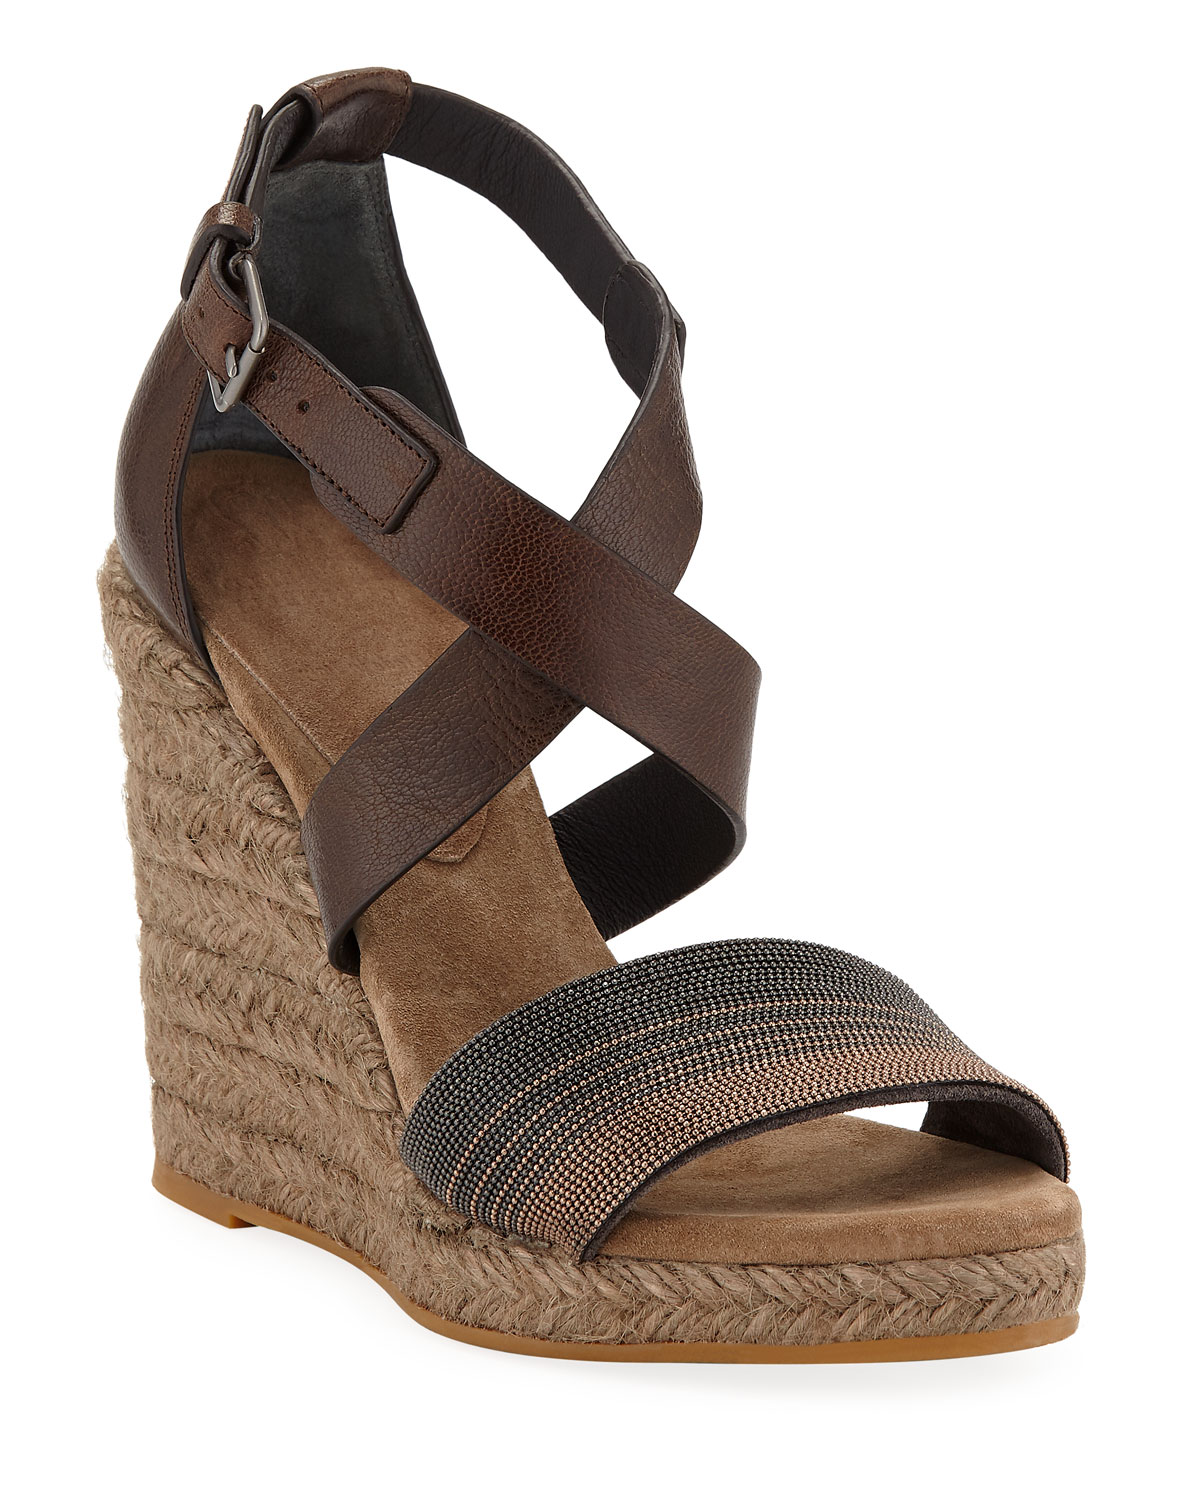 bfe76d088a9 Brunello Cucinelli Leather Wedge Espadrille Sandals